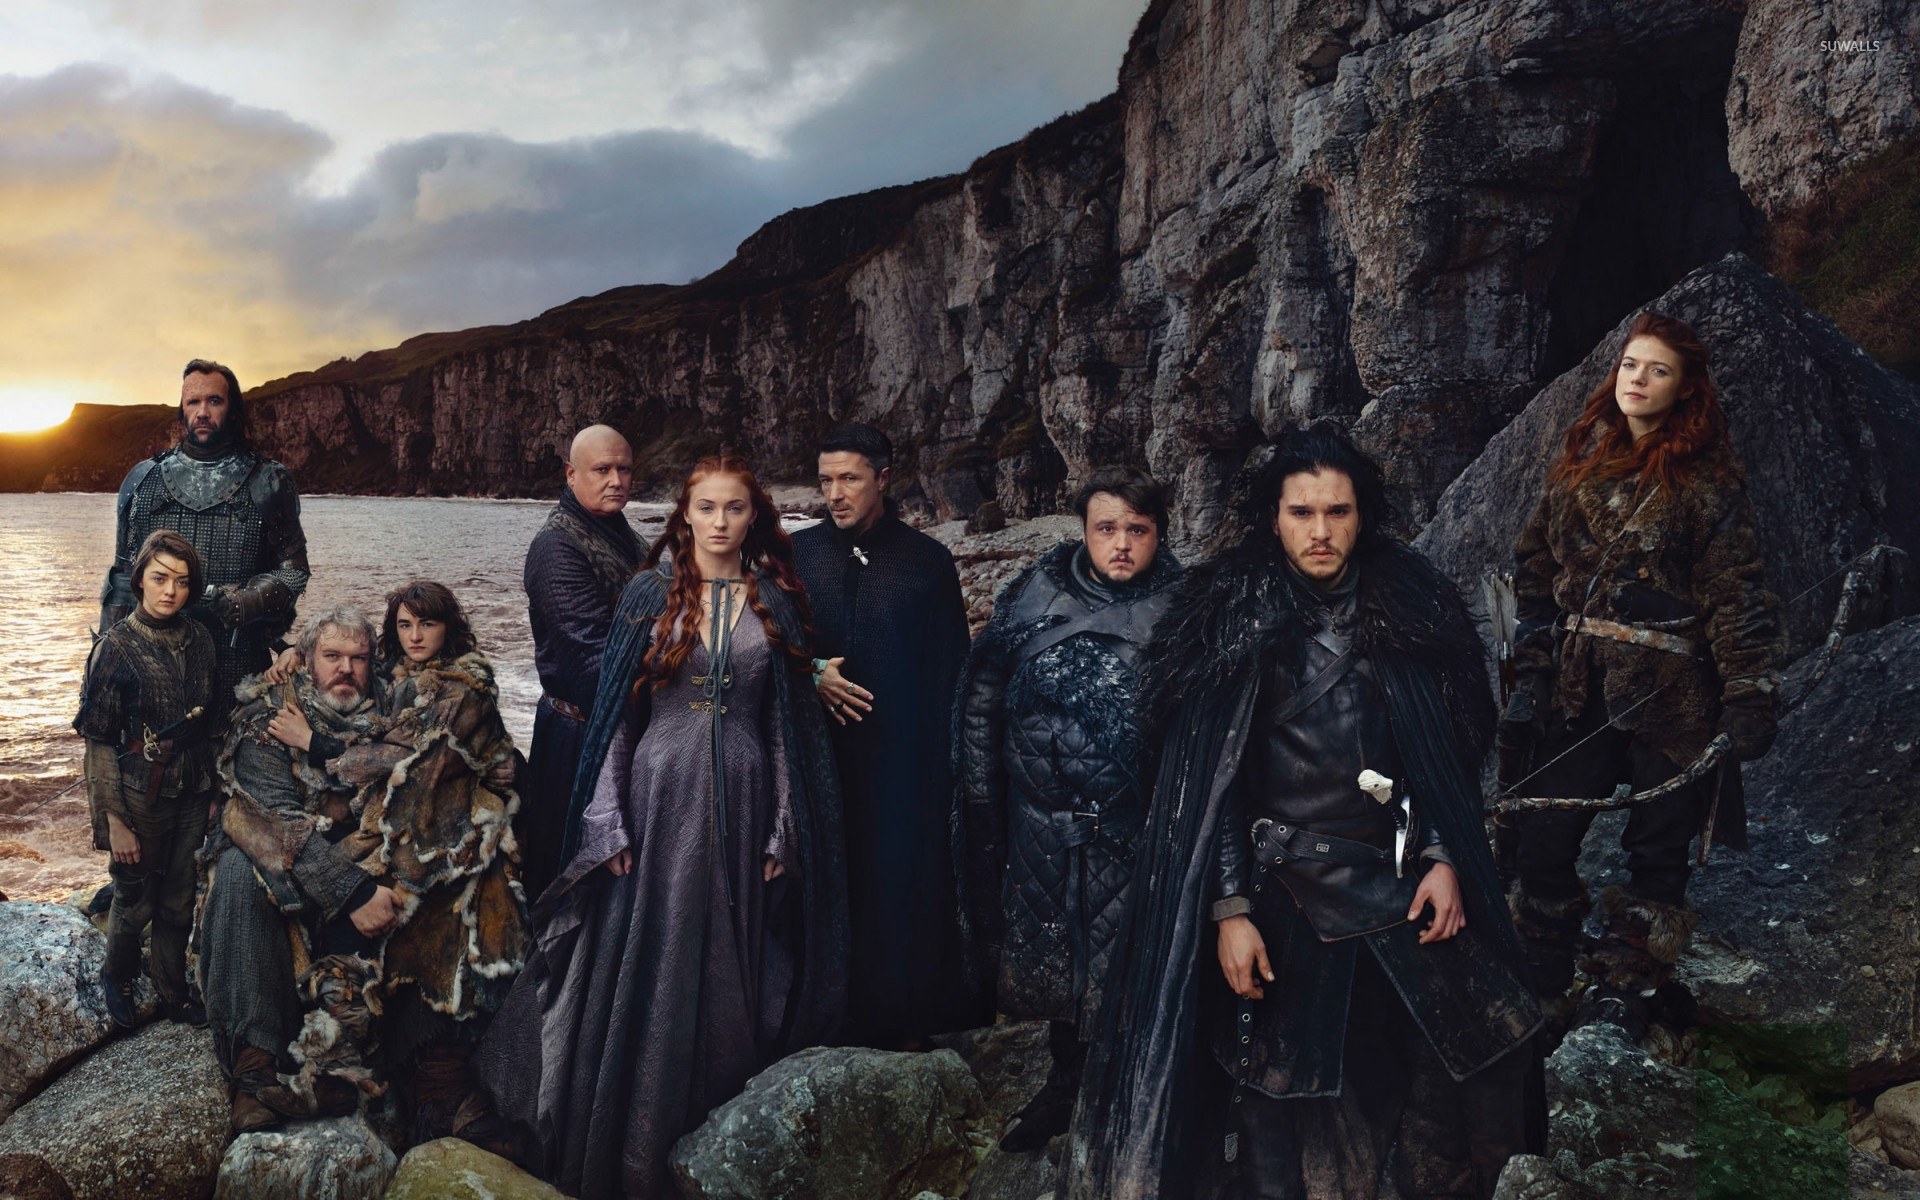 Game Of Thrones Cast 2 Wallpaper Tv Show Wallpapers 52807